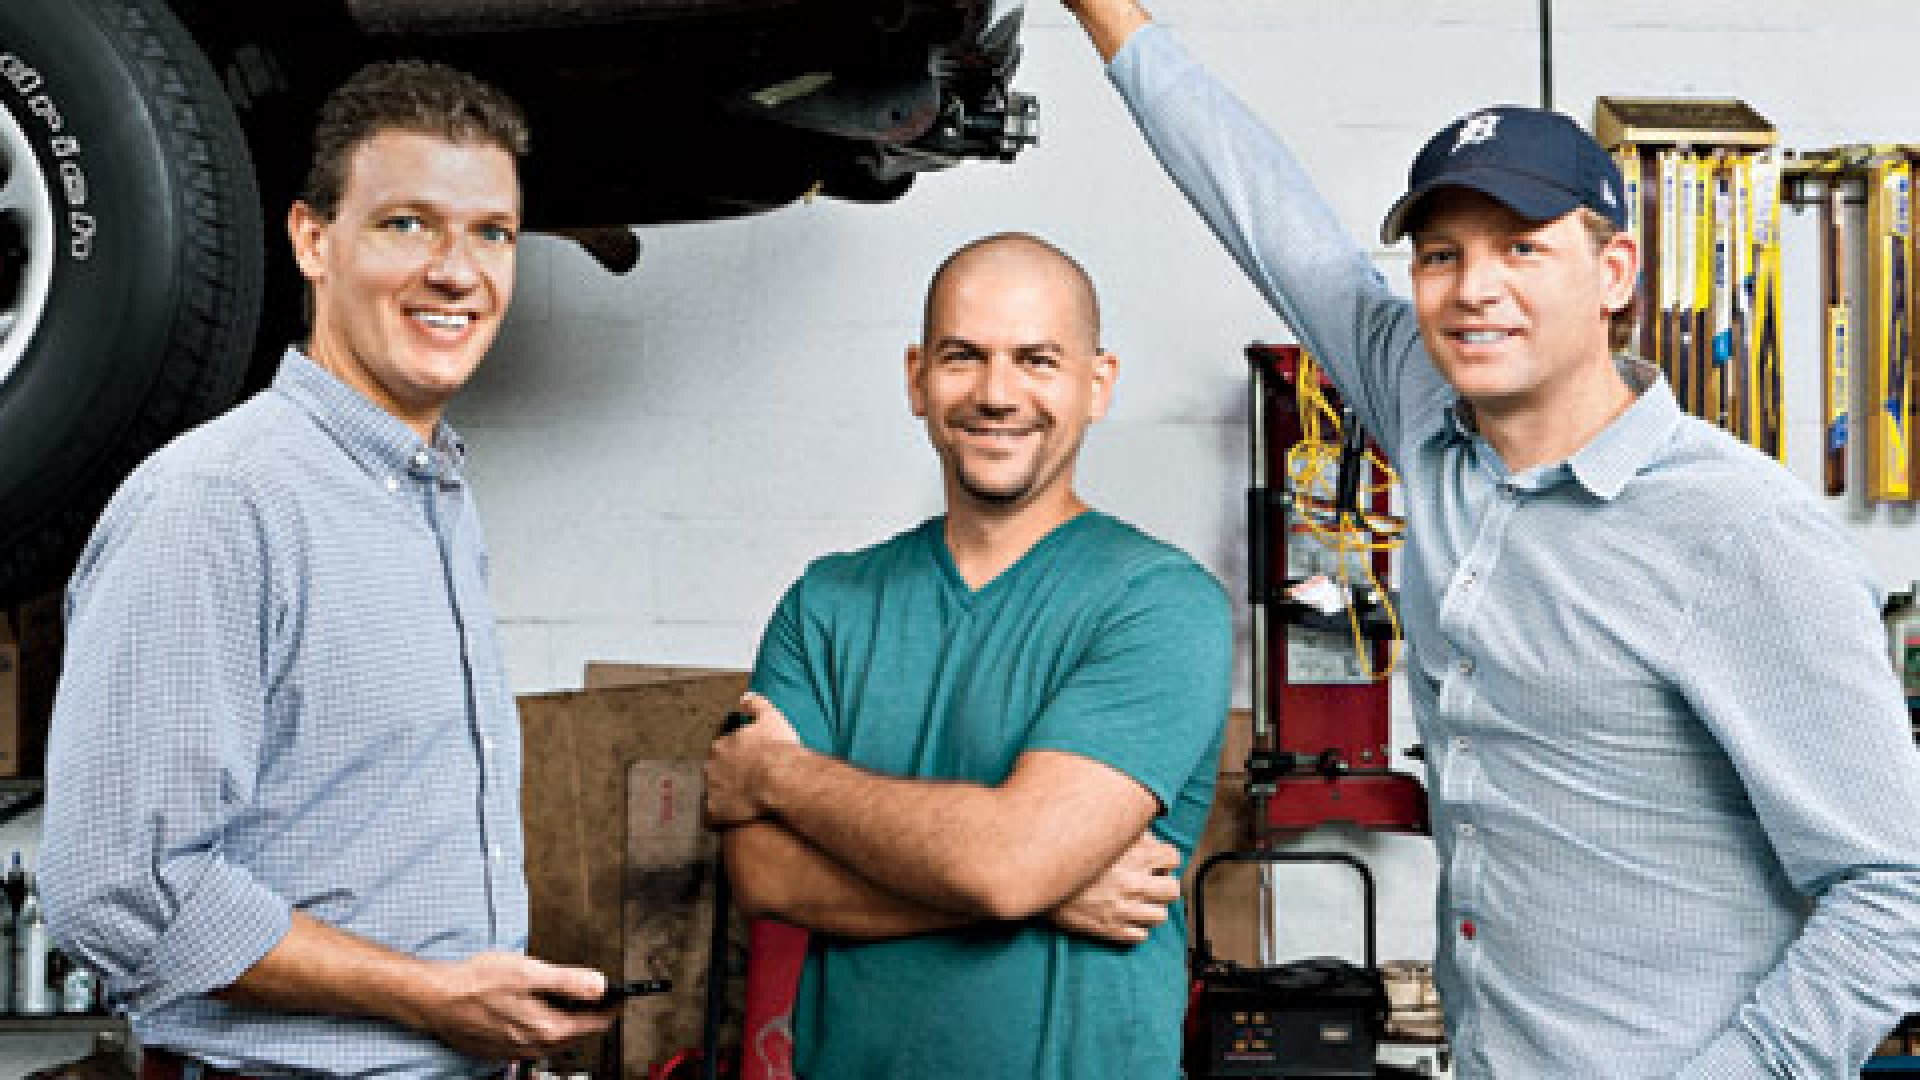 <b>On a Roll</b> Carvoyant co-founders, from left: Bret Tobey, Matt Galvin, and Renz Kuipers at a Tampa Bay-area auto-repair shop